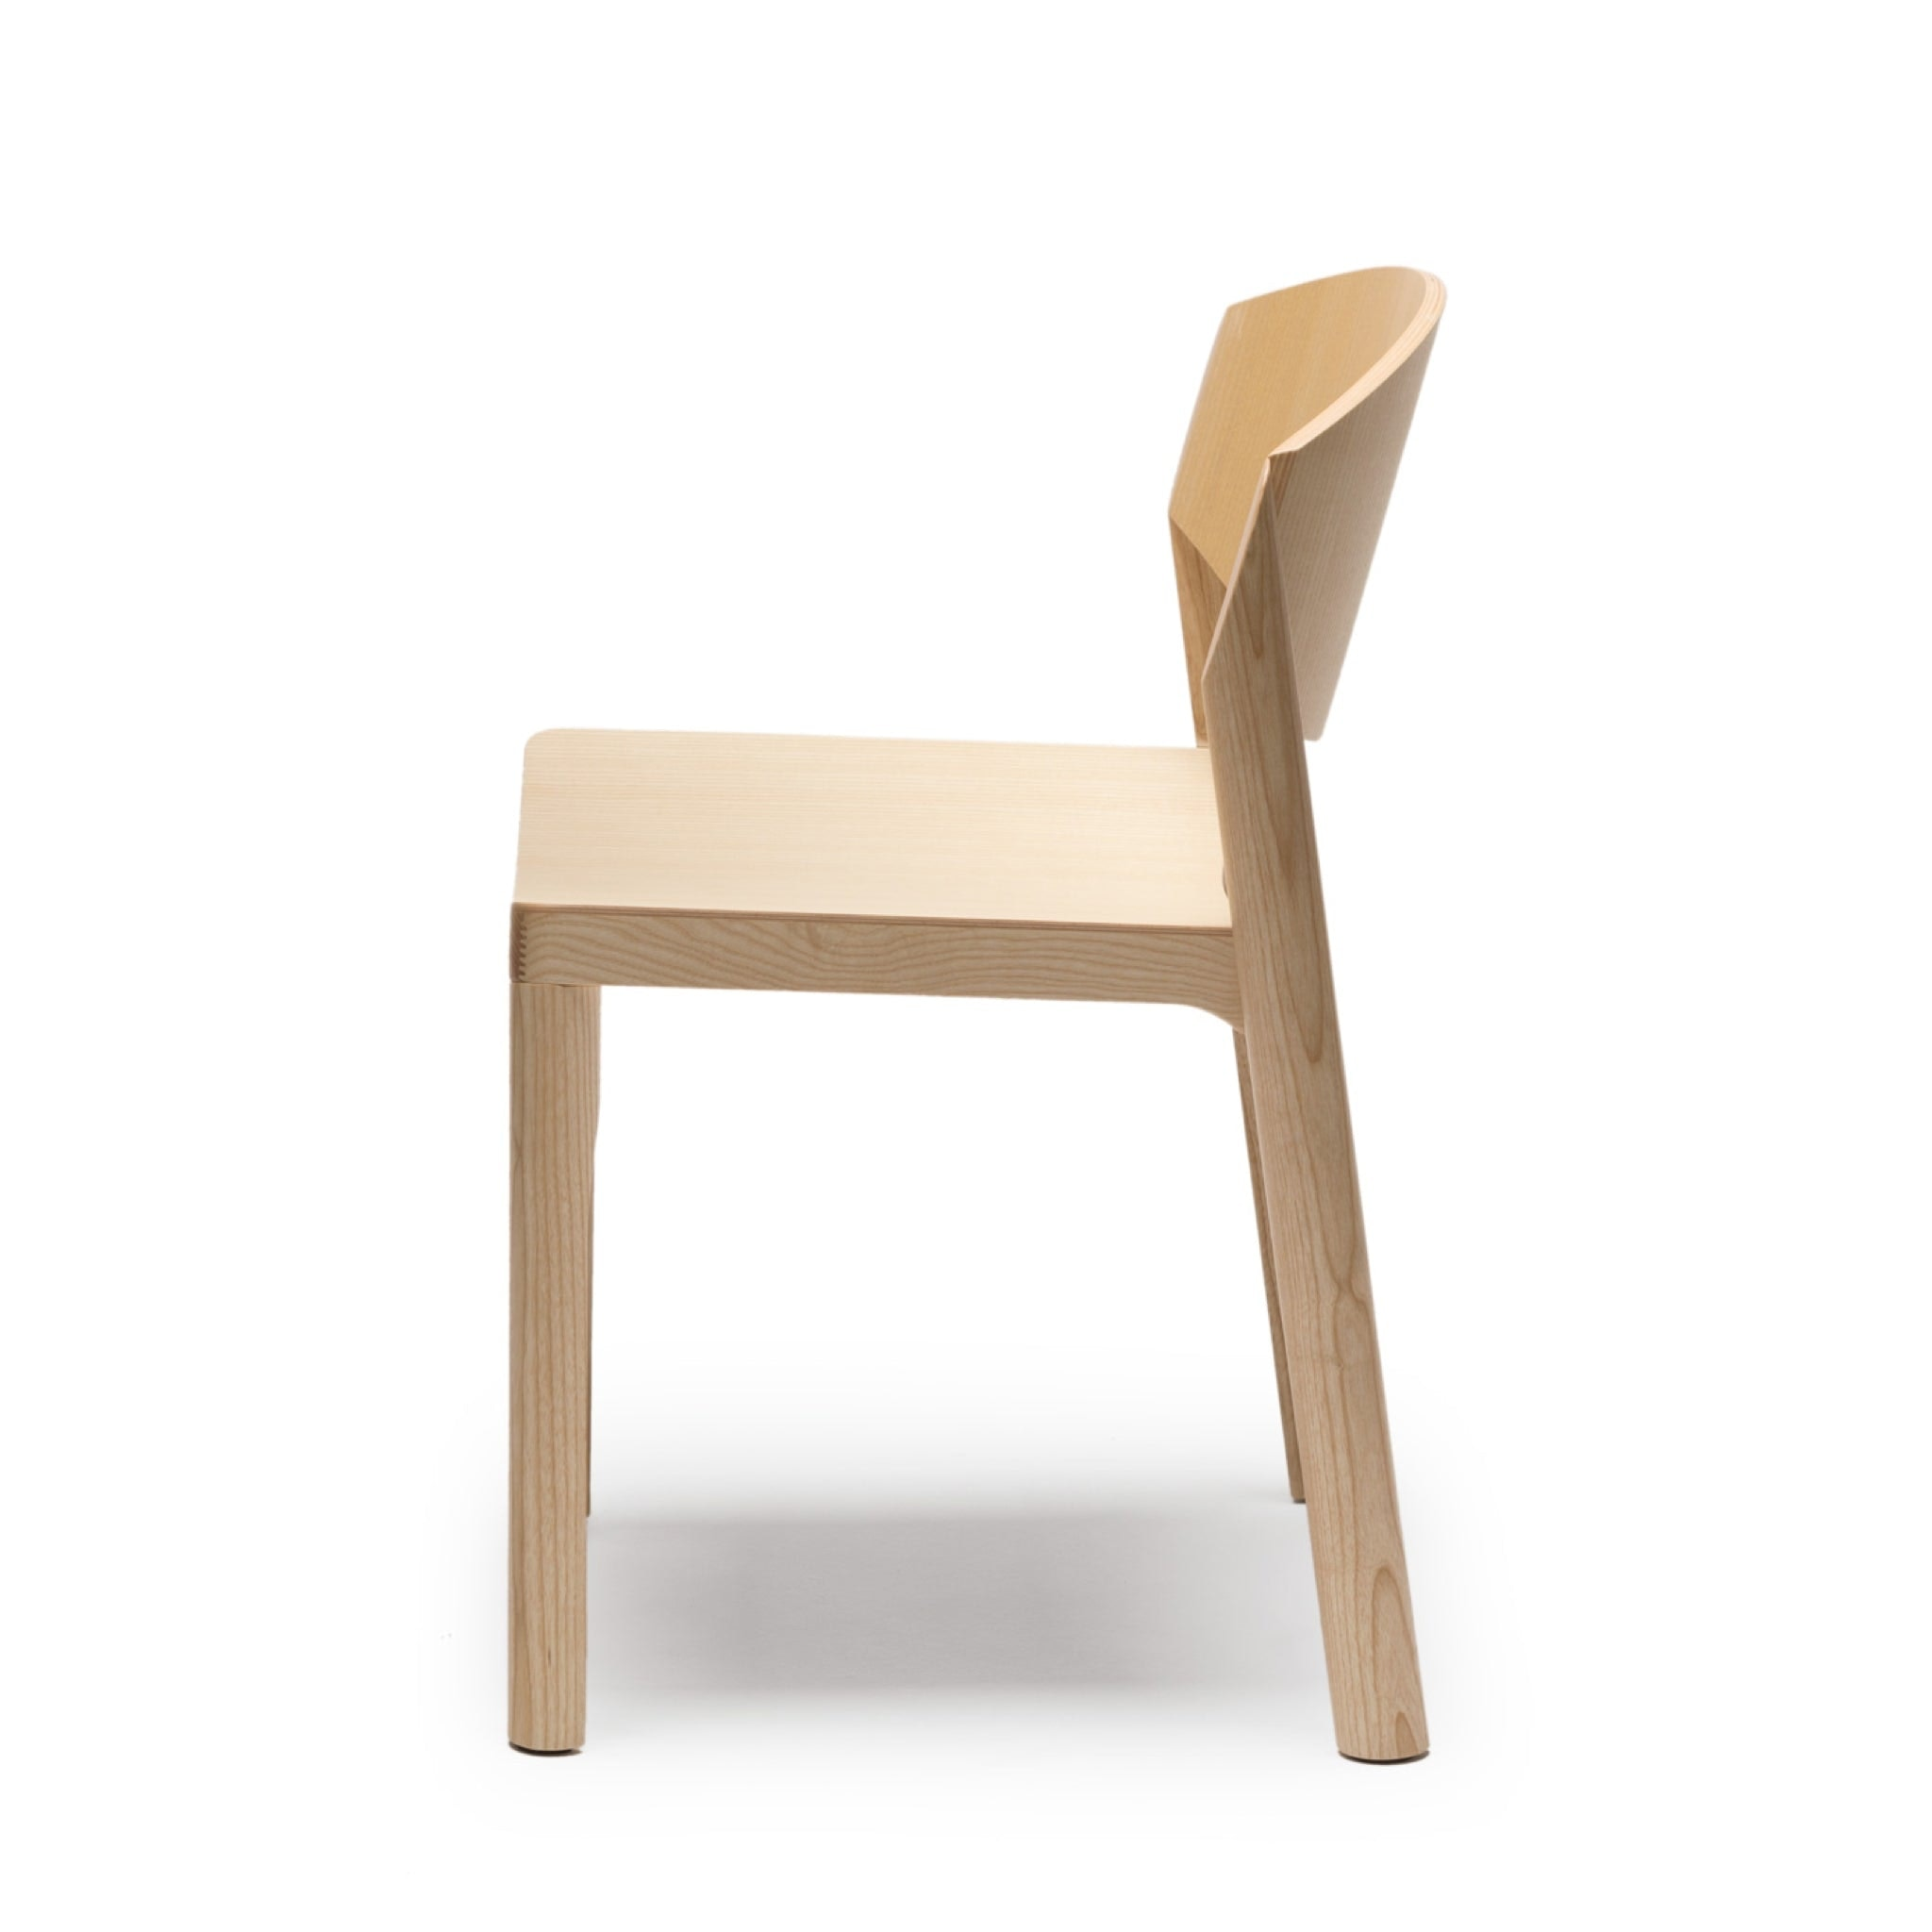 Mauro Chair by Established & Sons